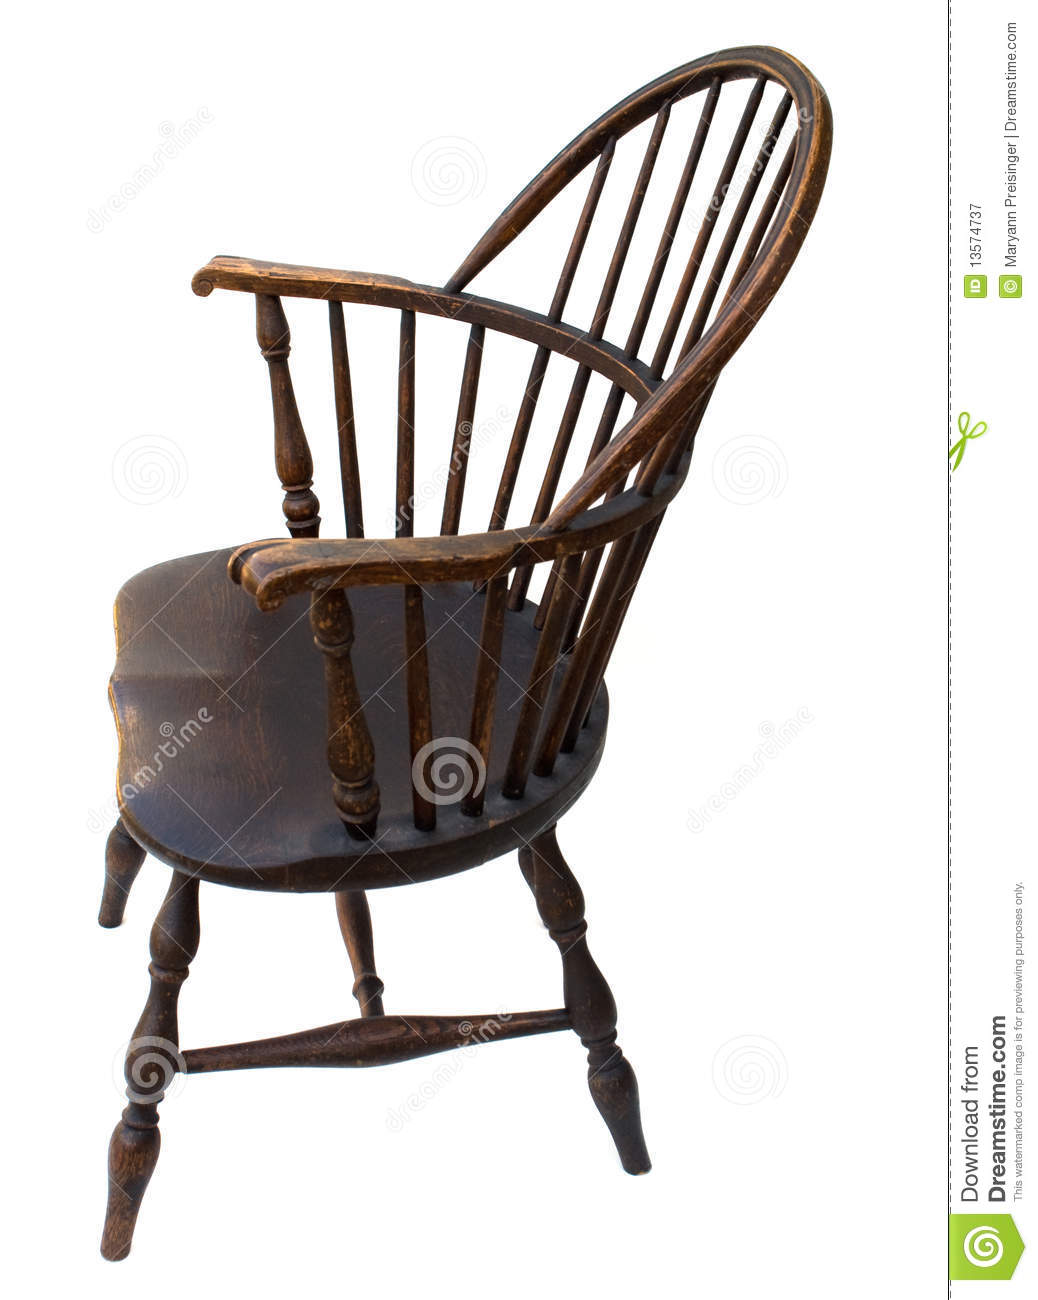 Antique Windsor Chair Side View Isolated Royalty Free Stock